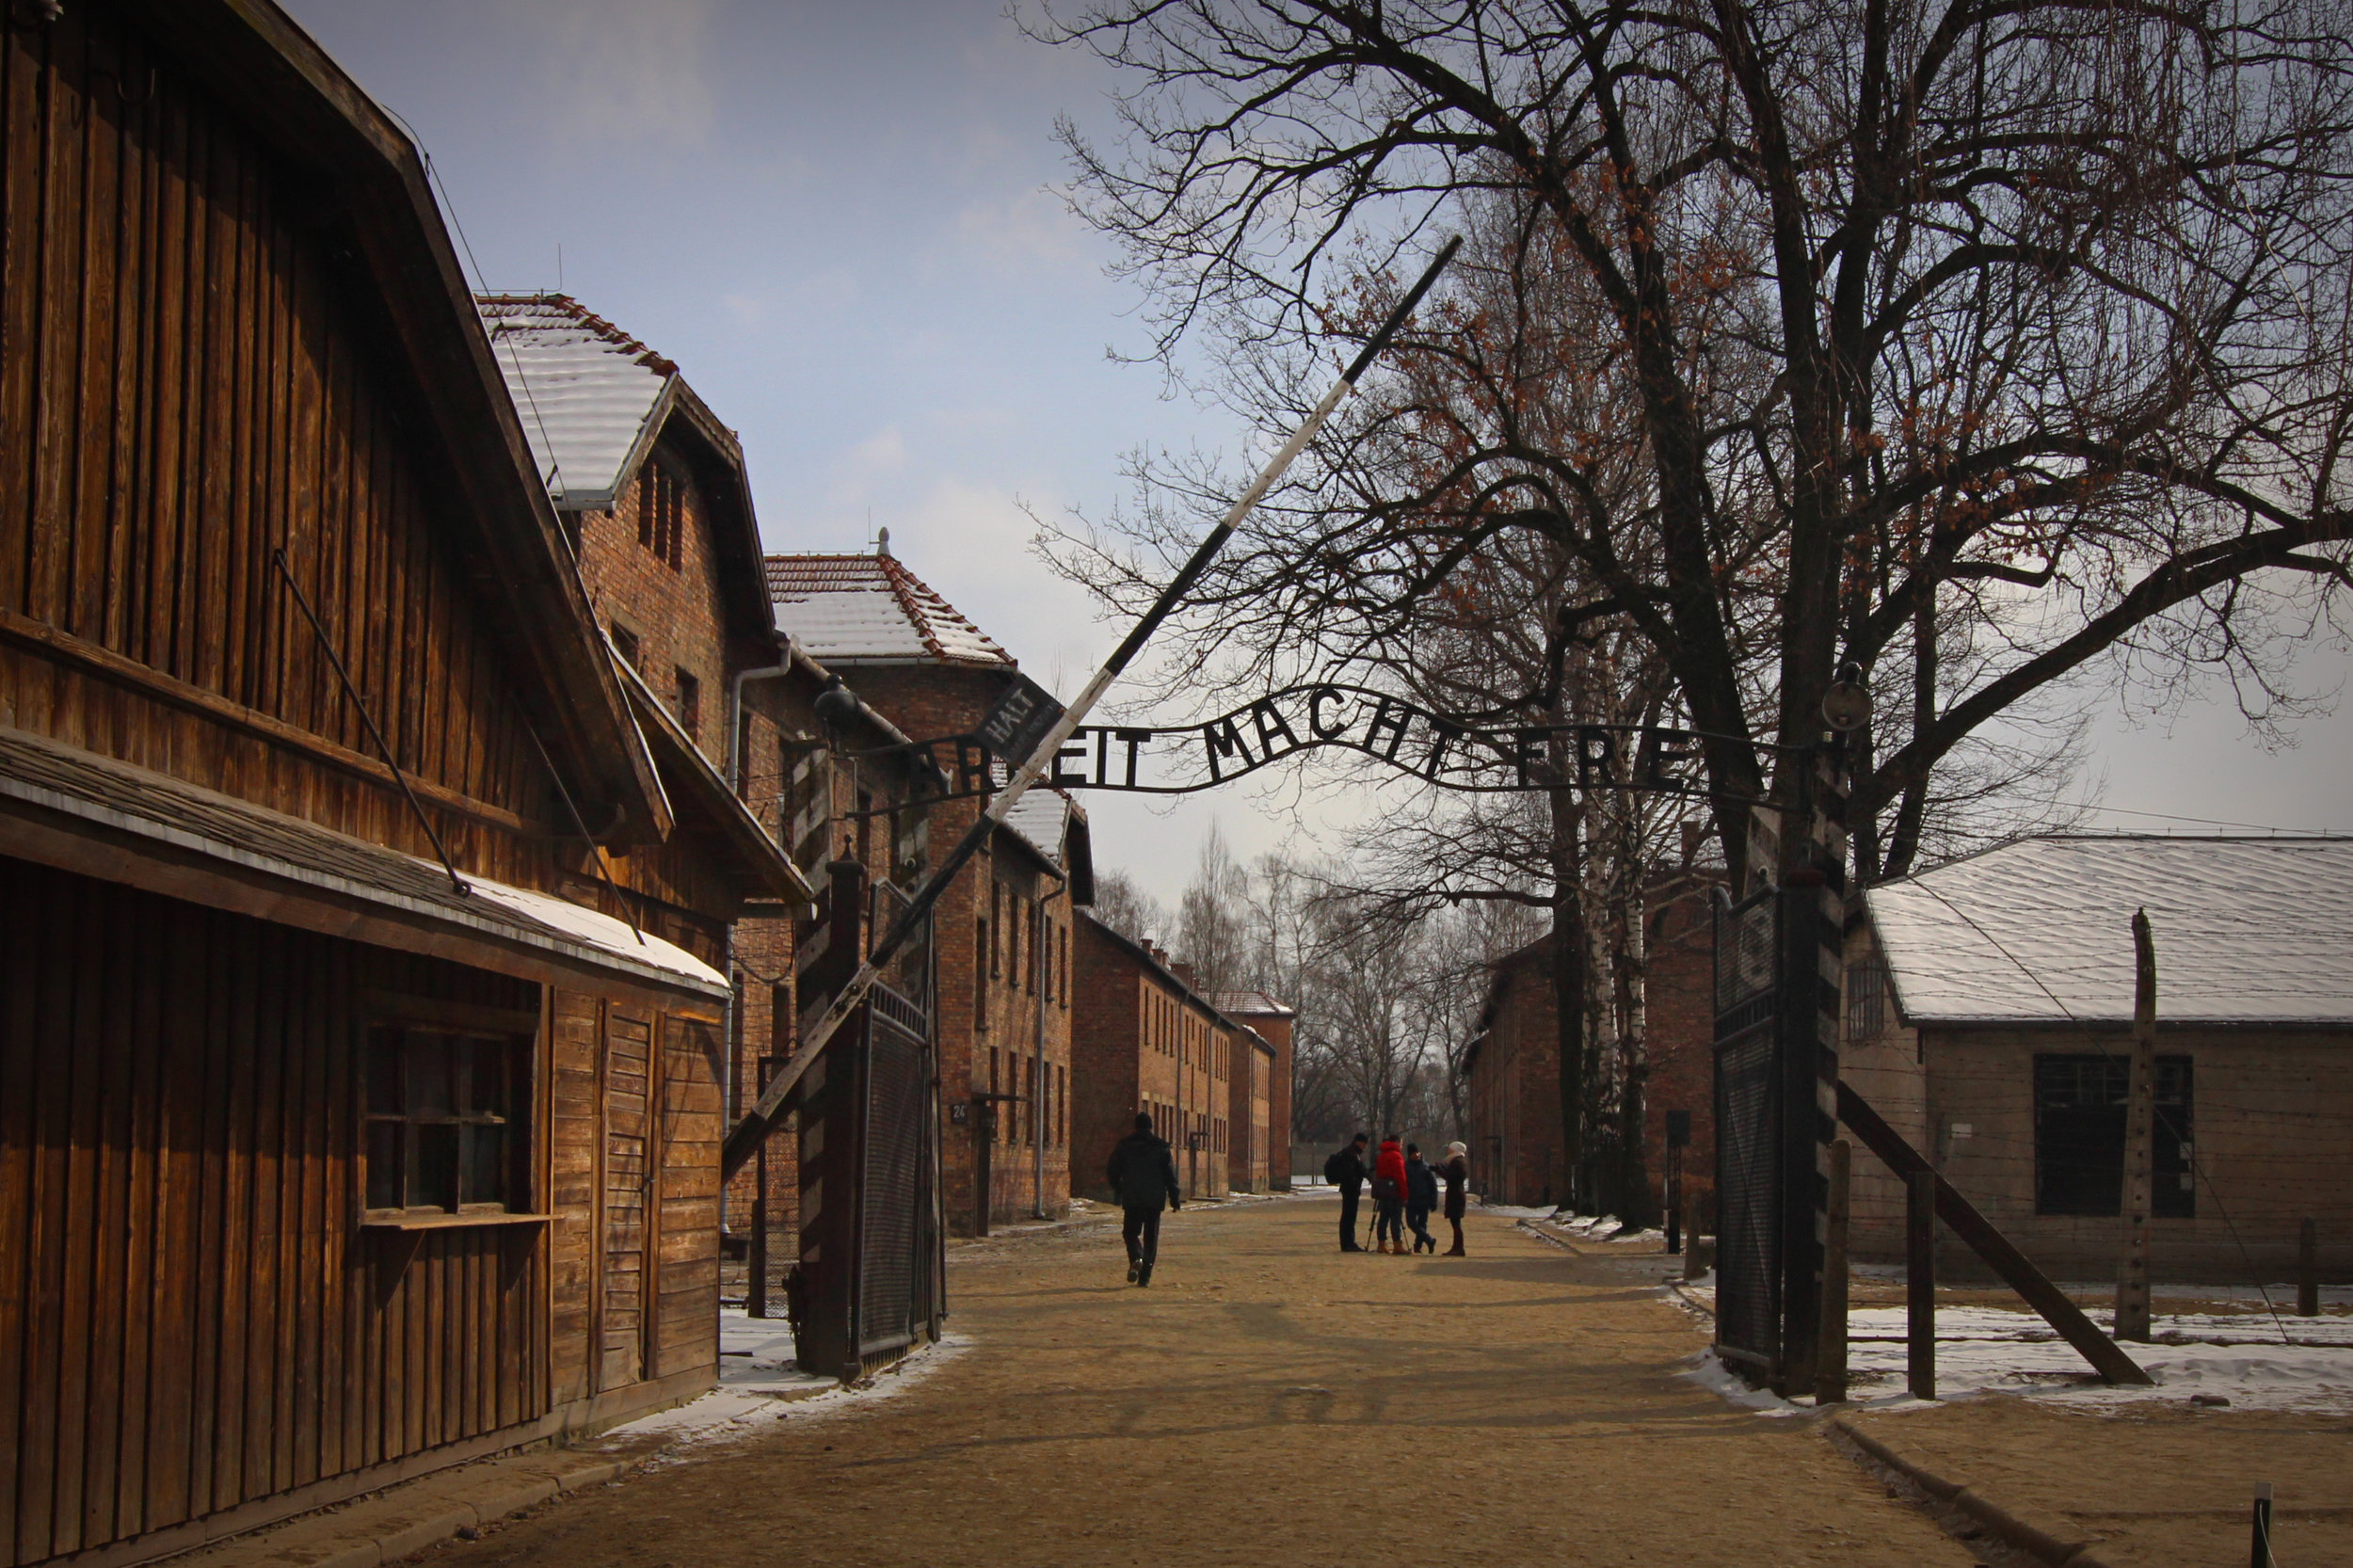 The iconic gate at Auschwitz.